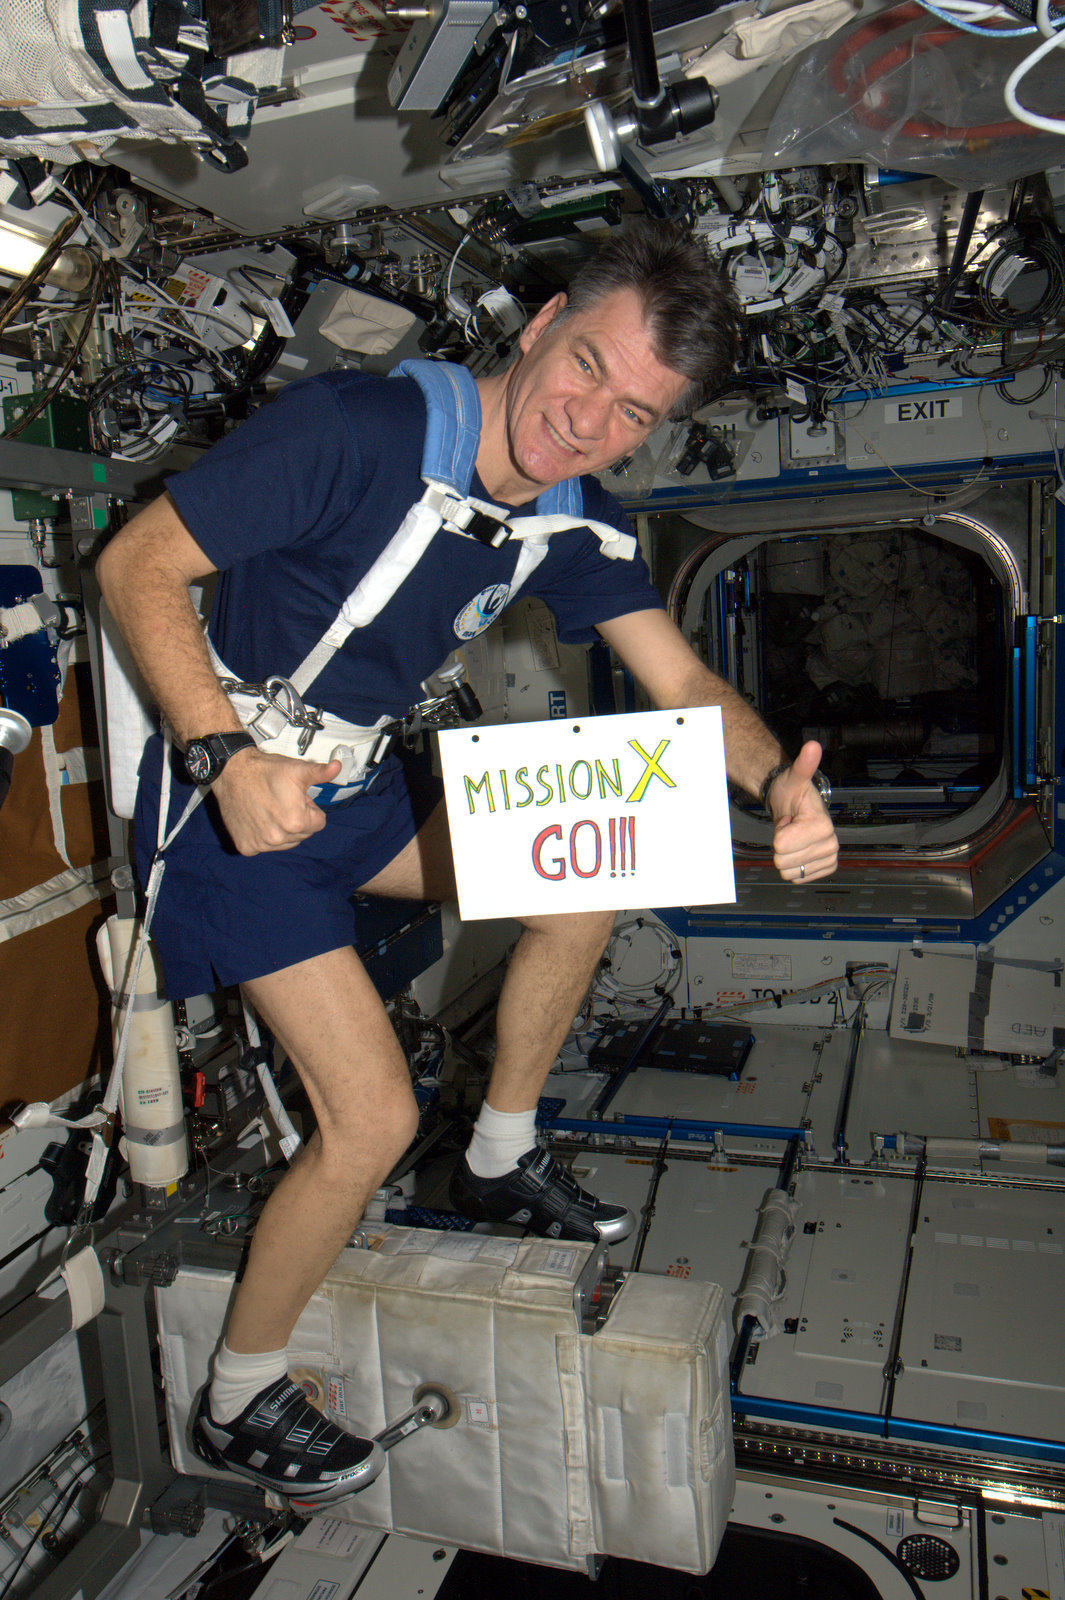 Paolo Nespoli during a session on the cyclette exercising bicycle, which is necessary in order to maintain the astronauts' muscle tone and to keep the blood circulation active. Credits: ESA/NASA